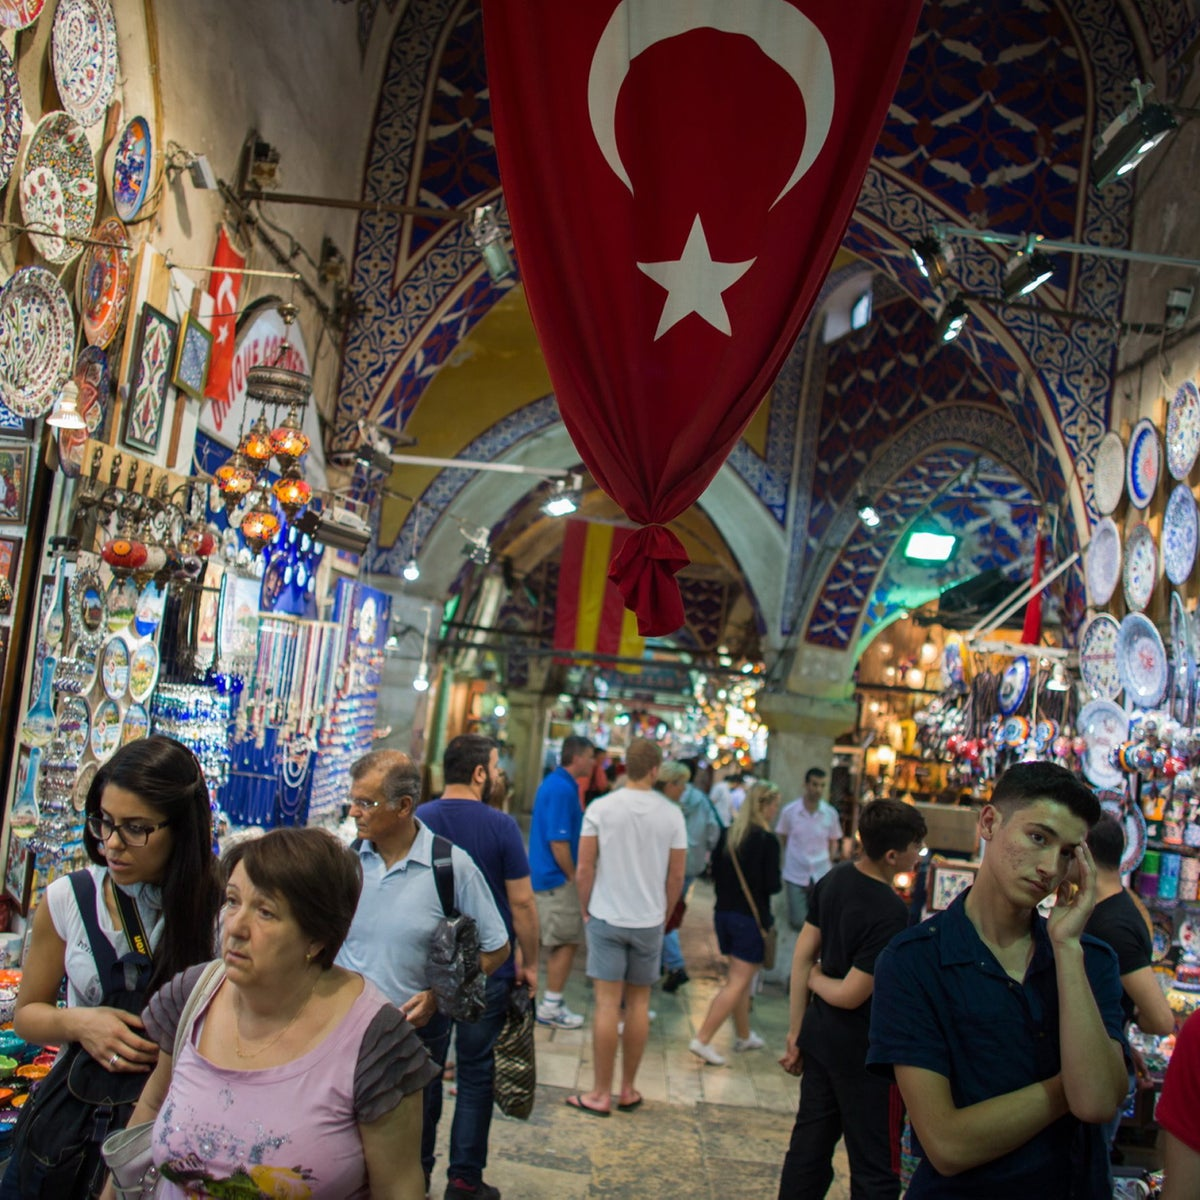 A busy market popular with tourists in Istanbul.